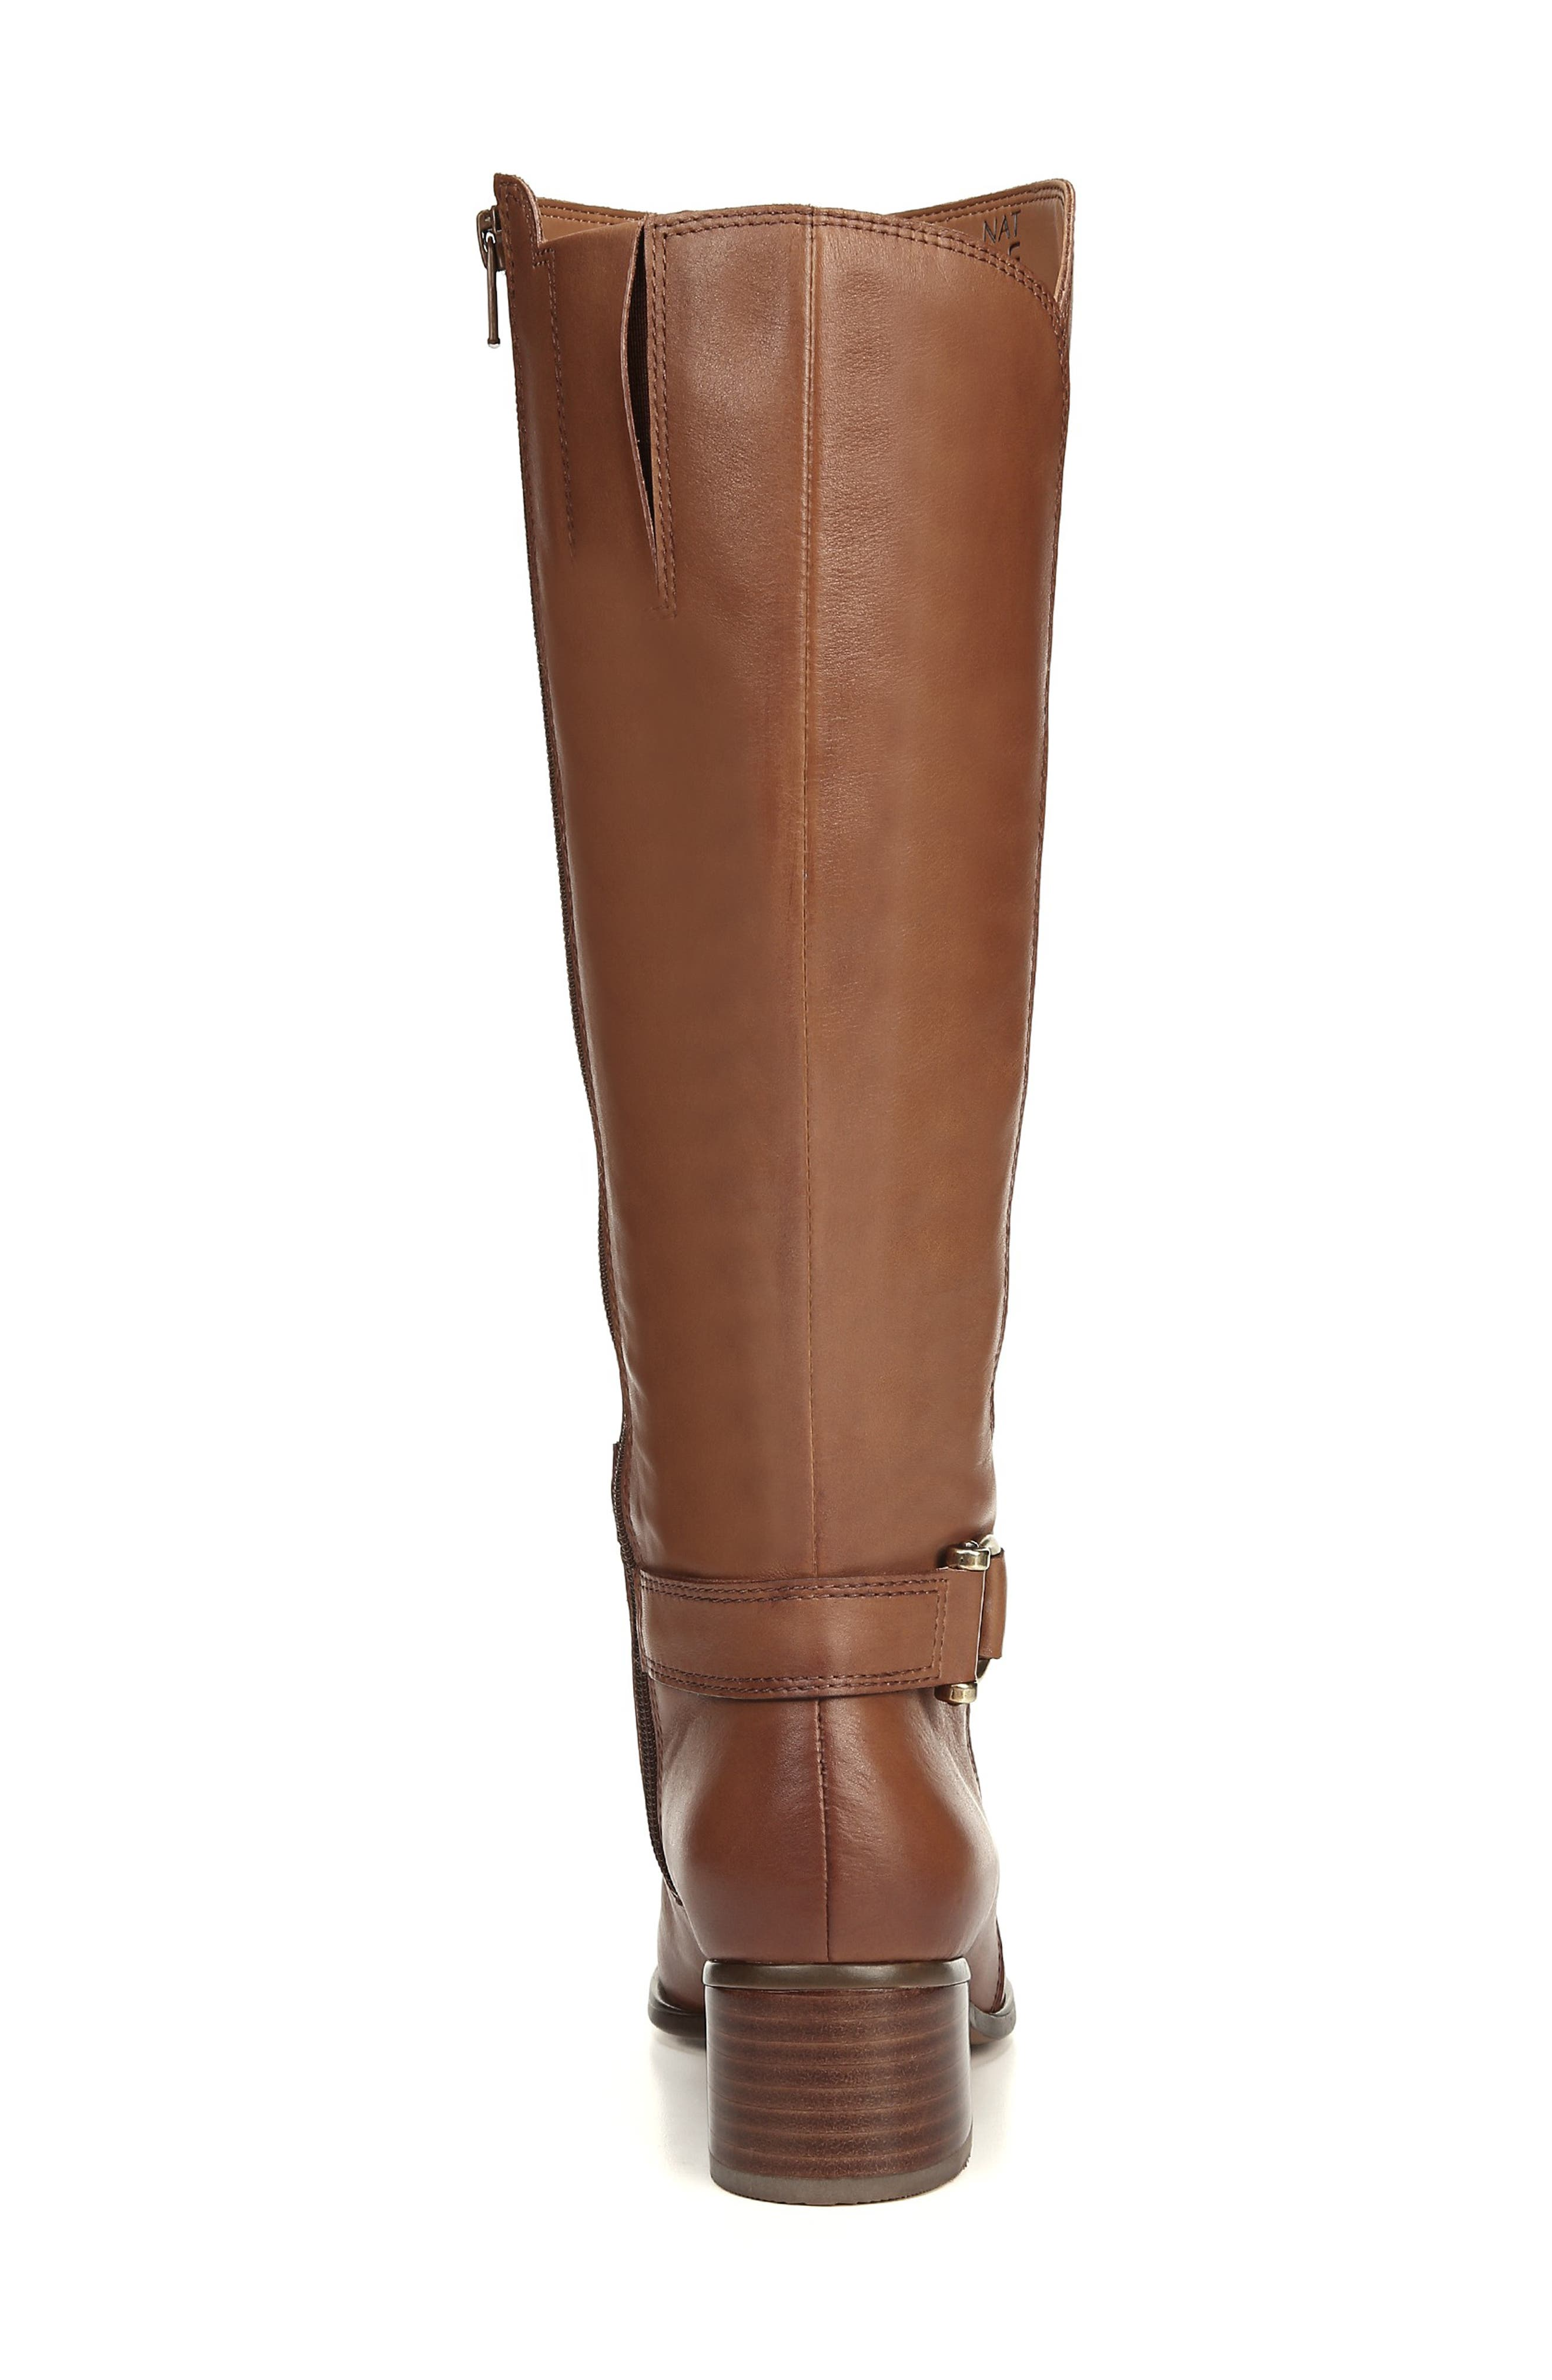 NATURALIZER, Dane Knee High Riding Boot, Alternate thumbnail 8, color, MAPLE LEATHER